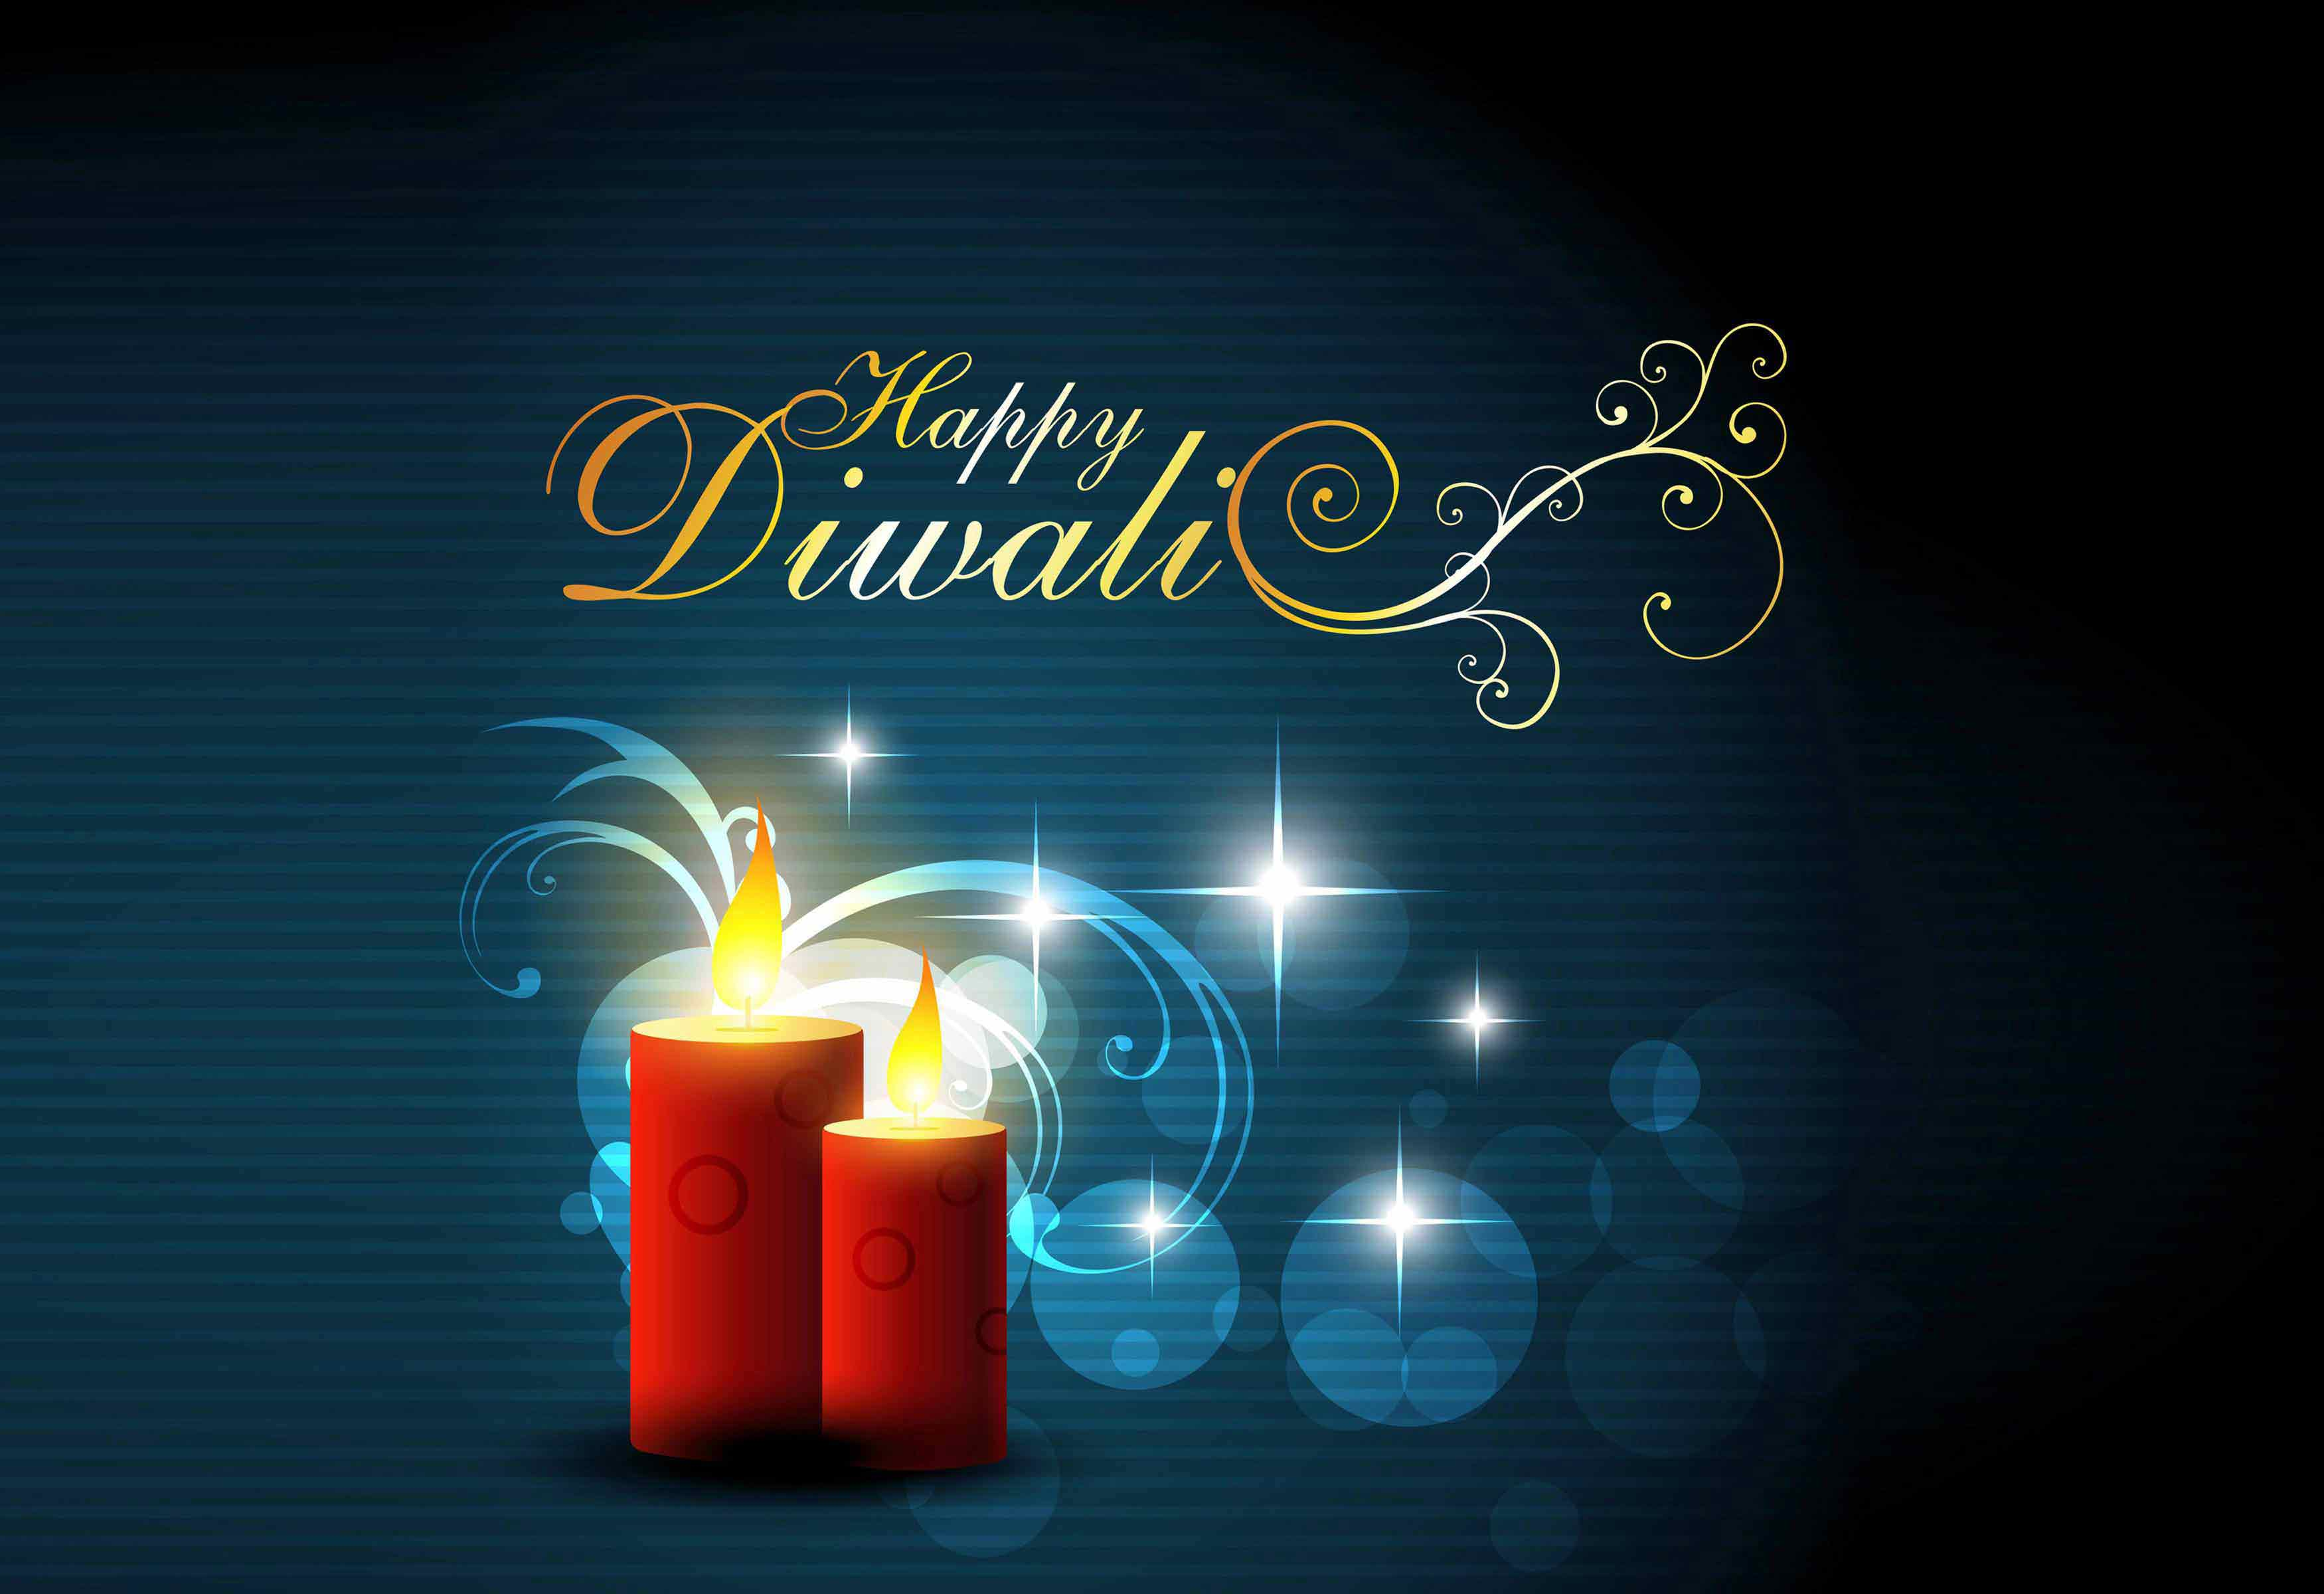 3d Home Wallpaper Malaysia Diwali Wallpapers Diwali Pictures Diwalifestival Org